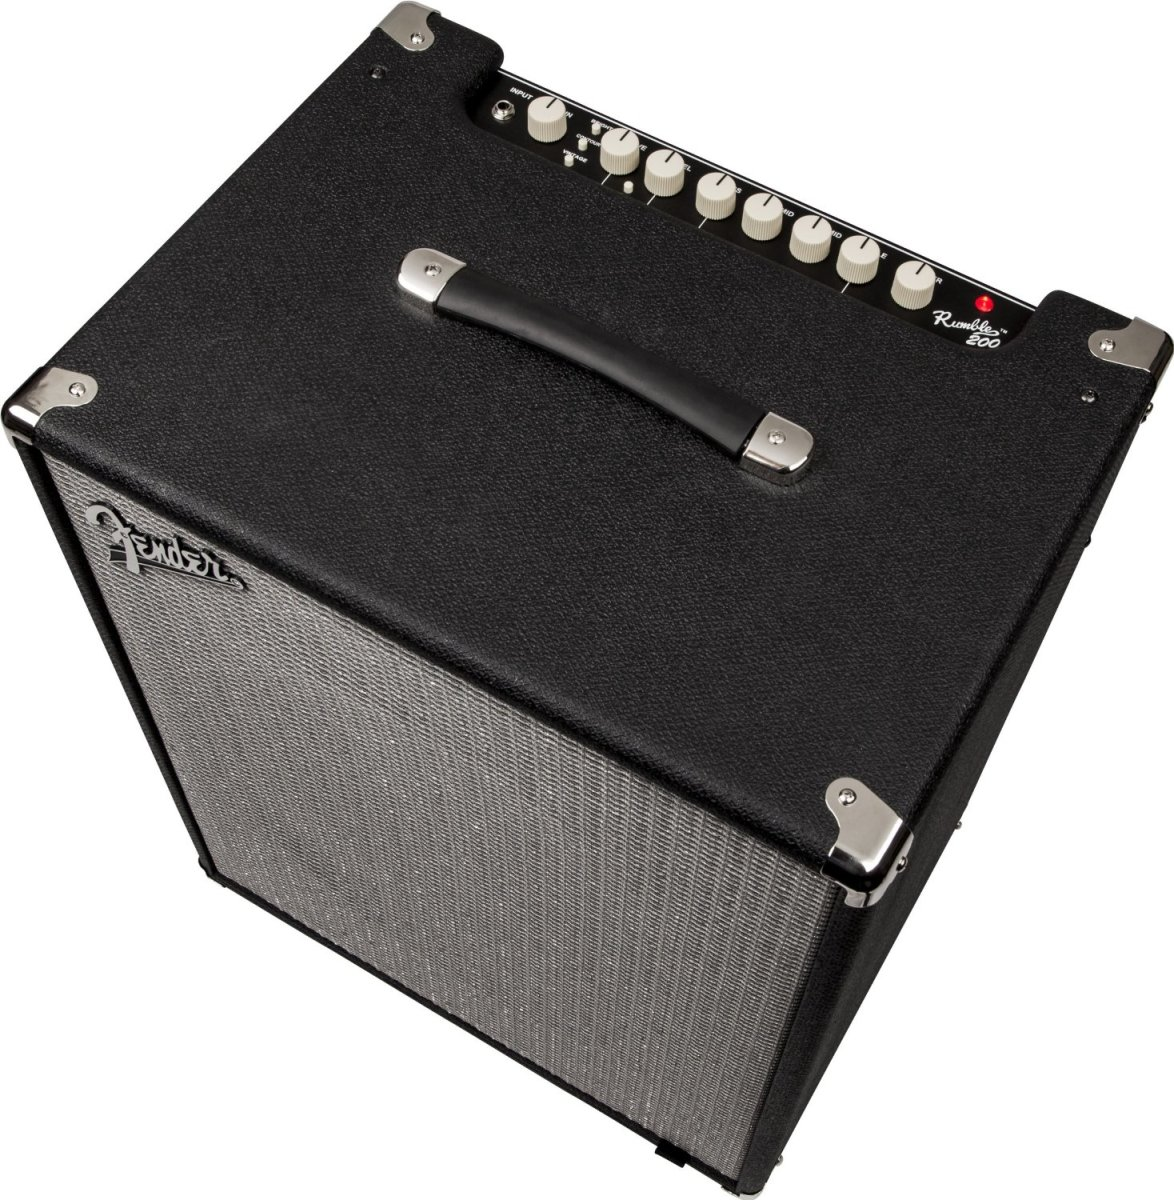 Best Bass Combo Amps Under $500